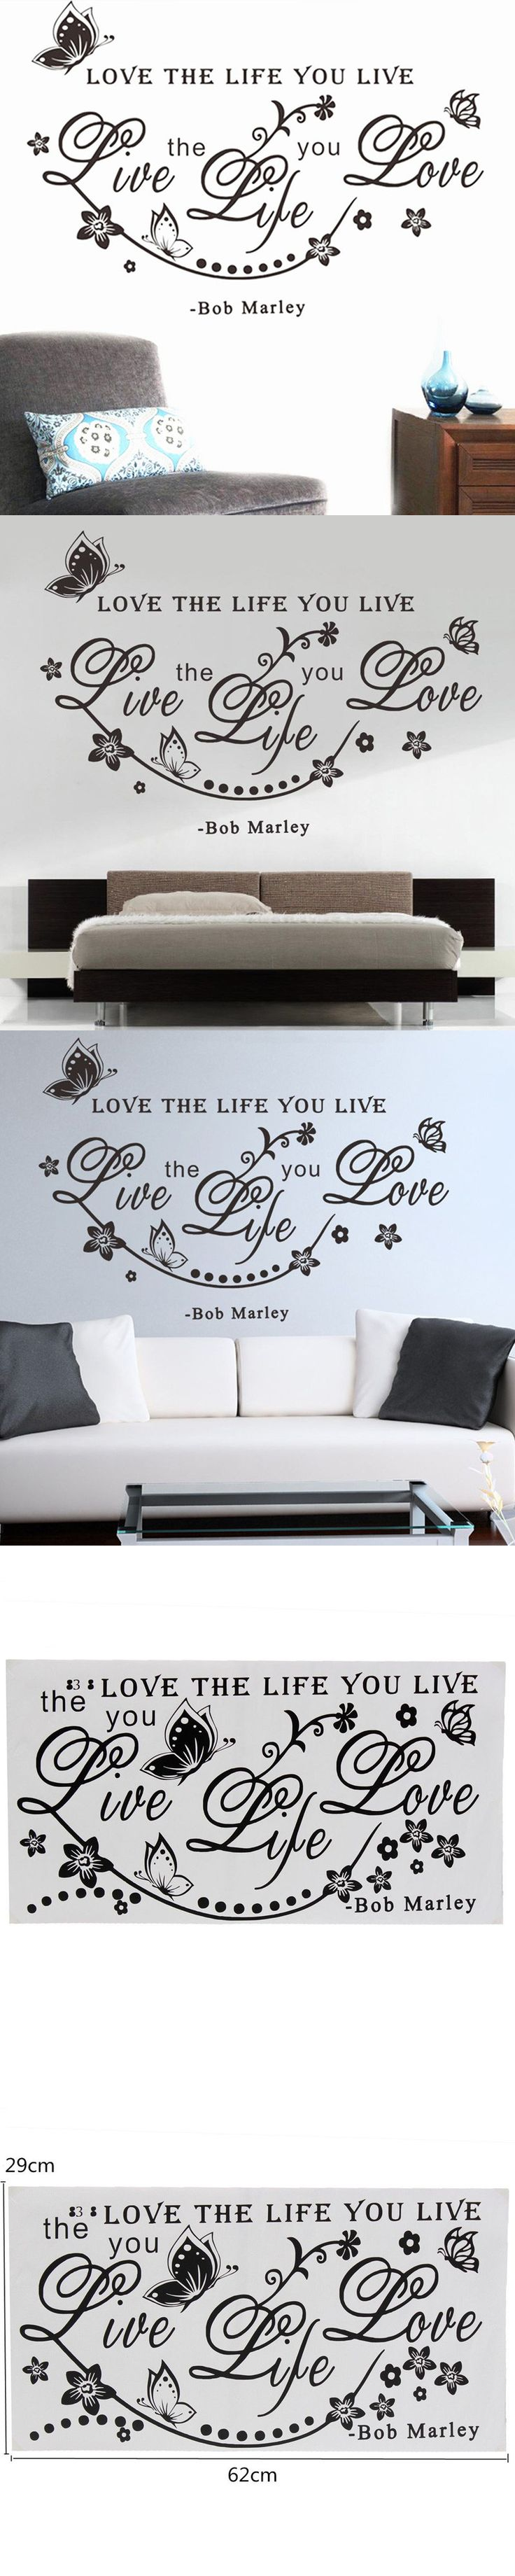 Best 25 butterfly wall stickers ideas on pinterest butterfly 2pcslot removable wall stickers famous inspirational quote decal art vinyl butterfly wall sticker home decor size 29 x 62cm amipublicfo Image collections